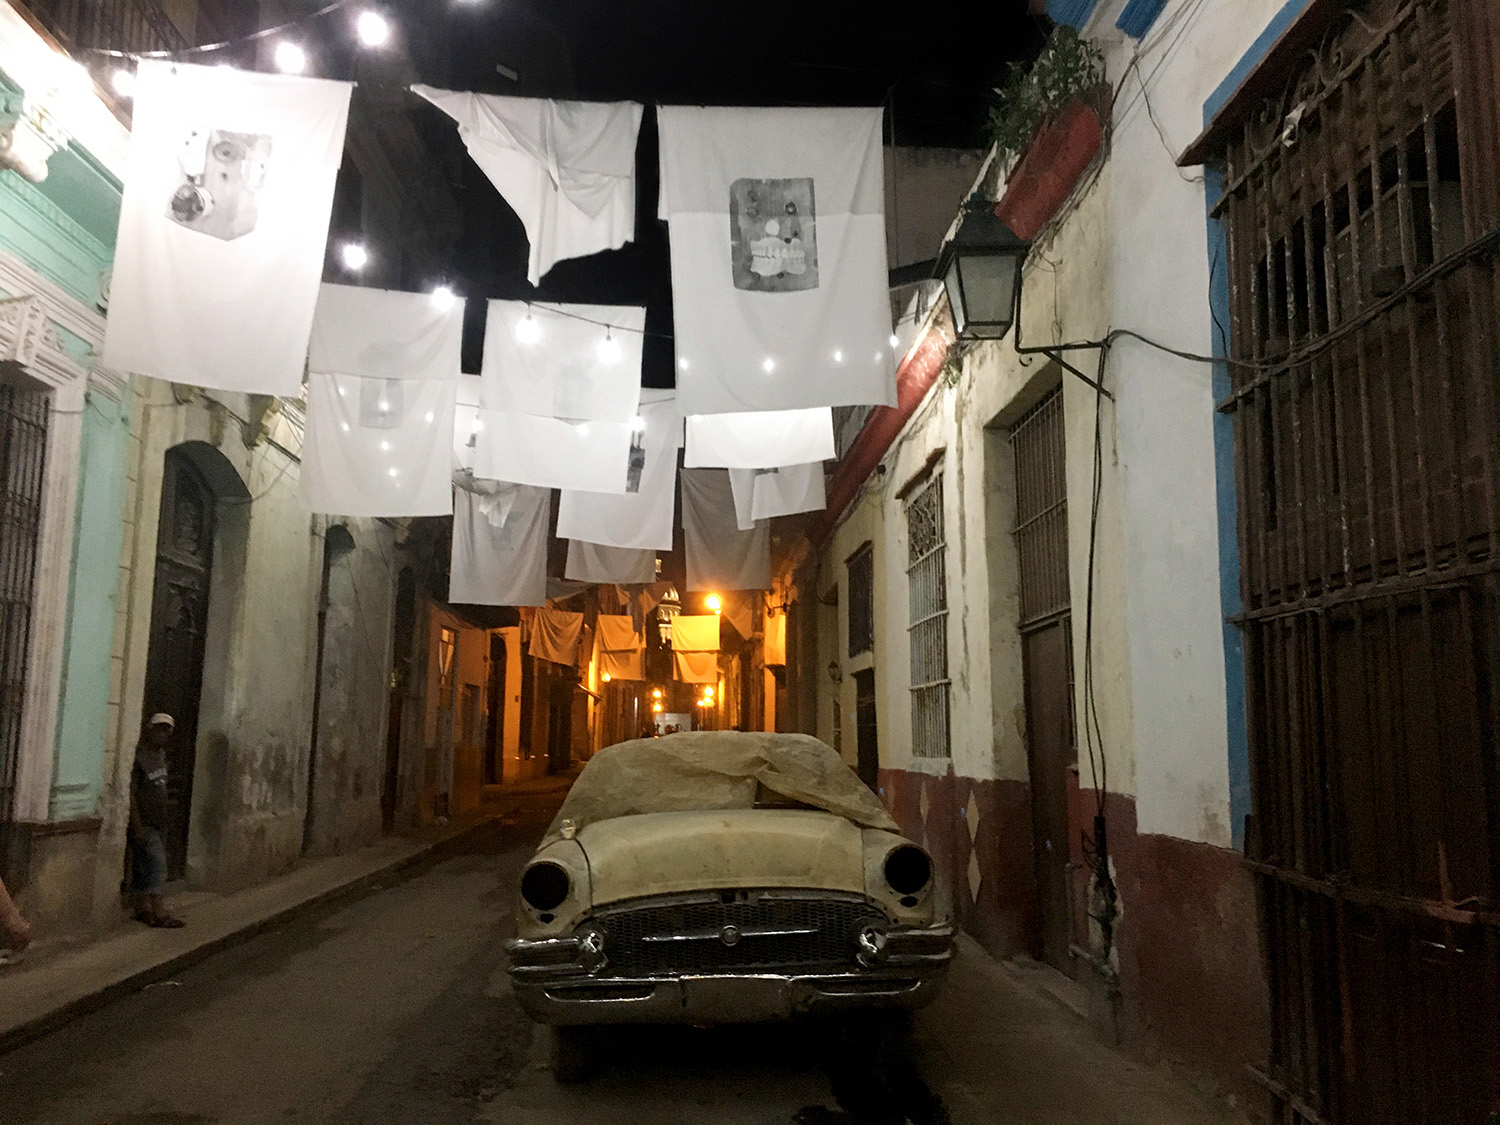 1950s car on a dark street beneath a hanging cloth art exhibit in Old Havana.